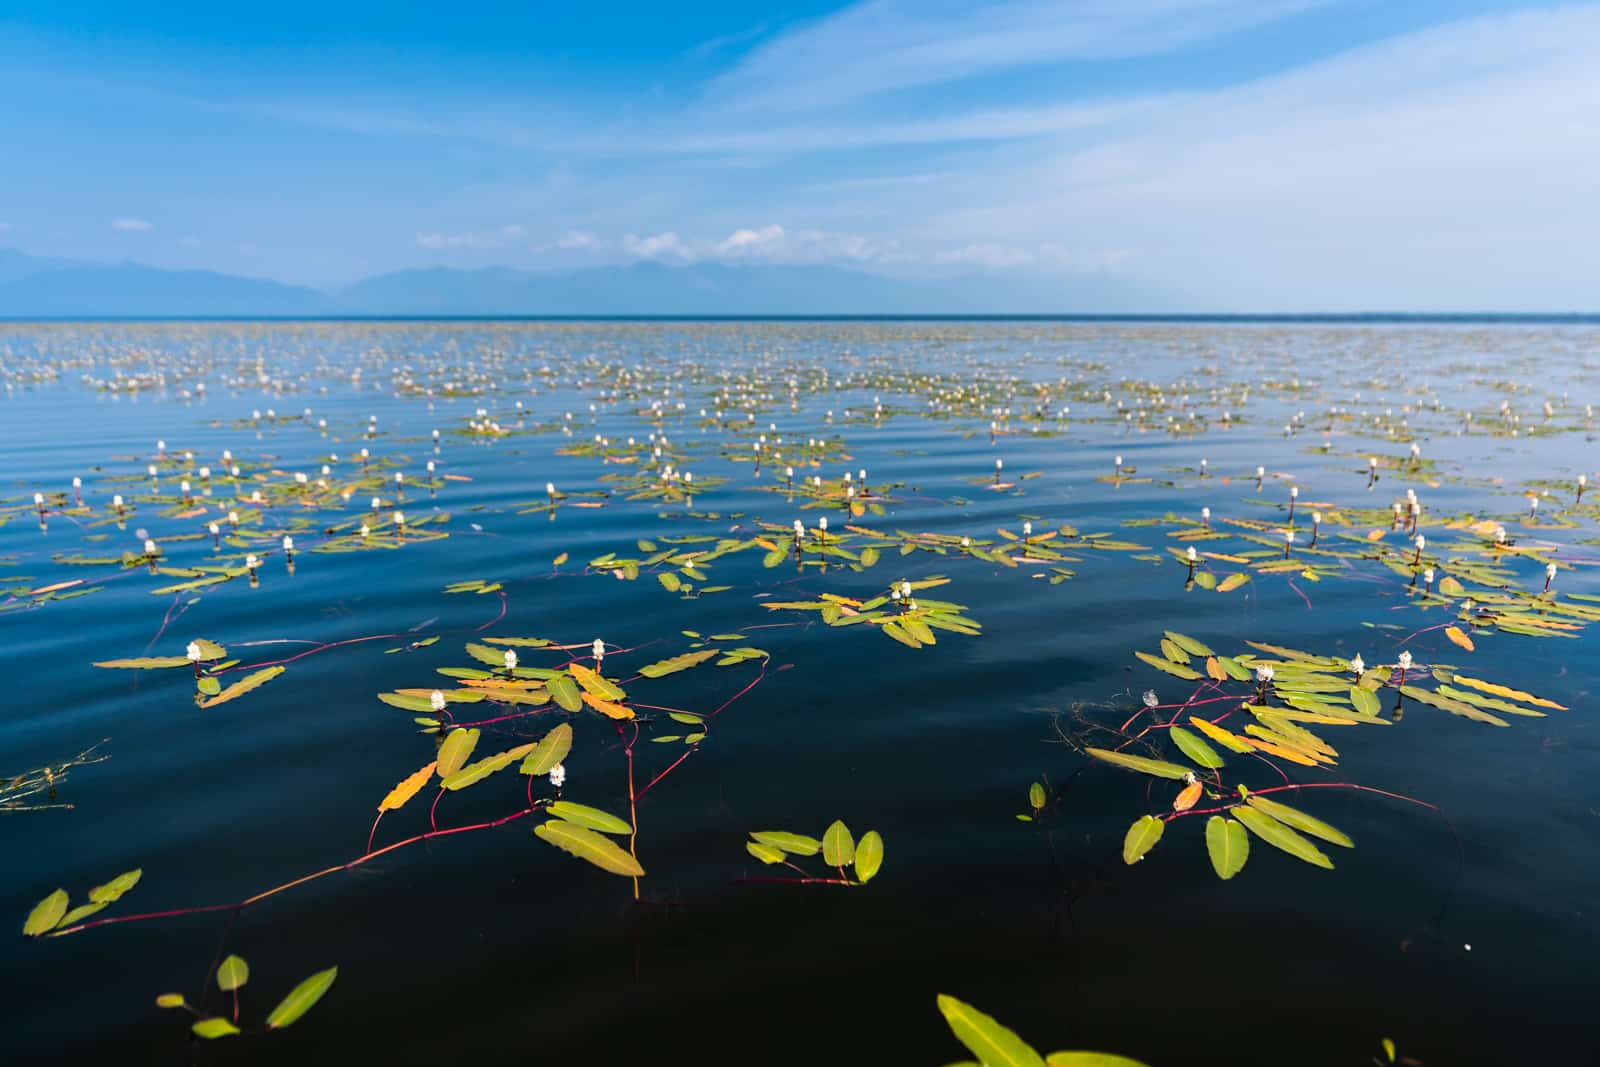 Water plants in North Lake Baikal, Siberia, Russia